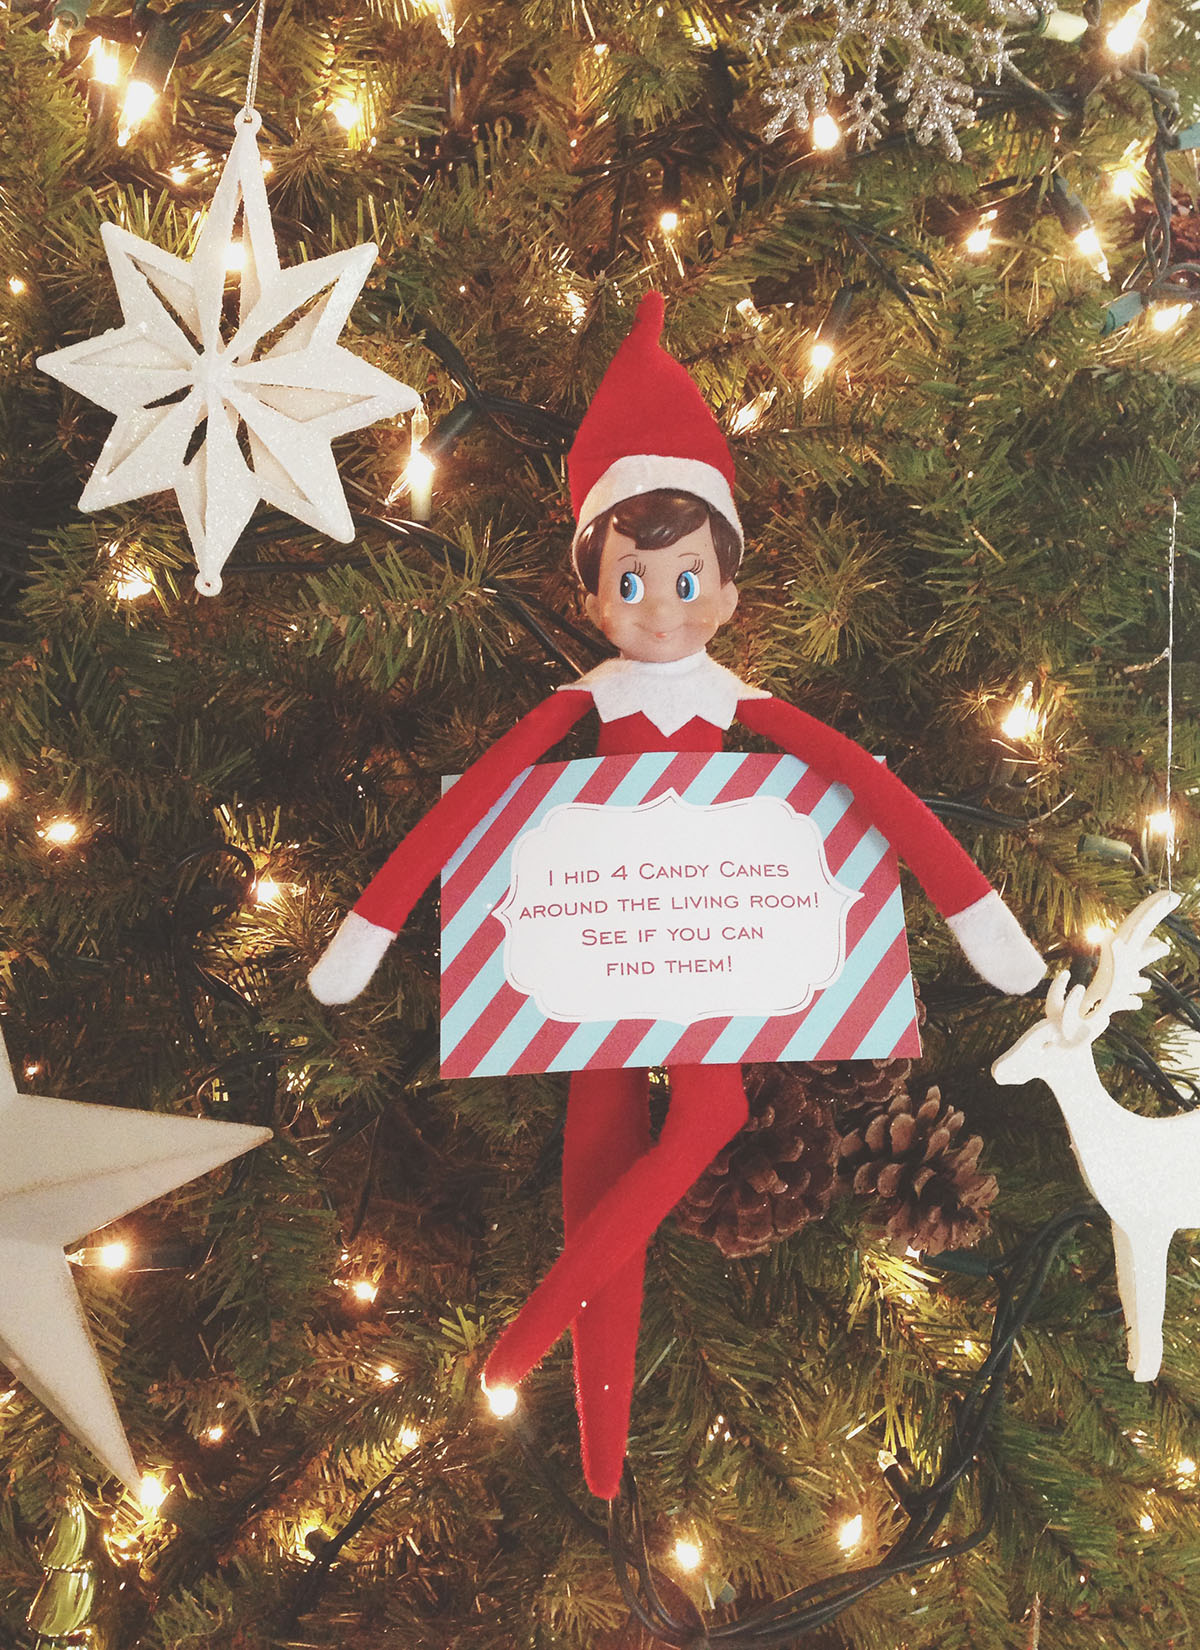 Elf sends the kids on a candy-cane scavenger hunt!